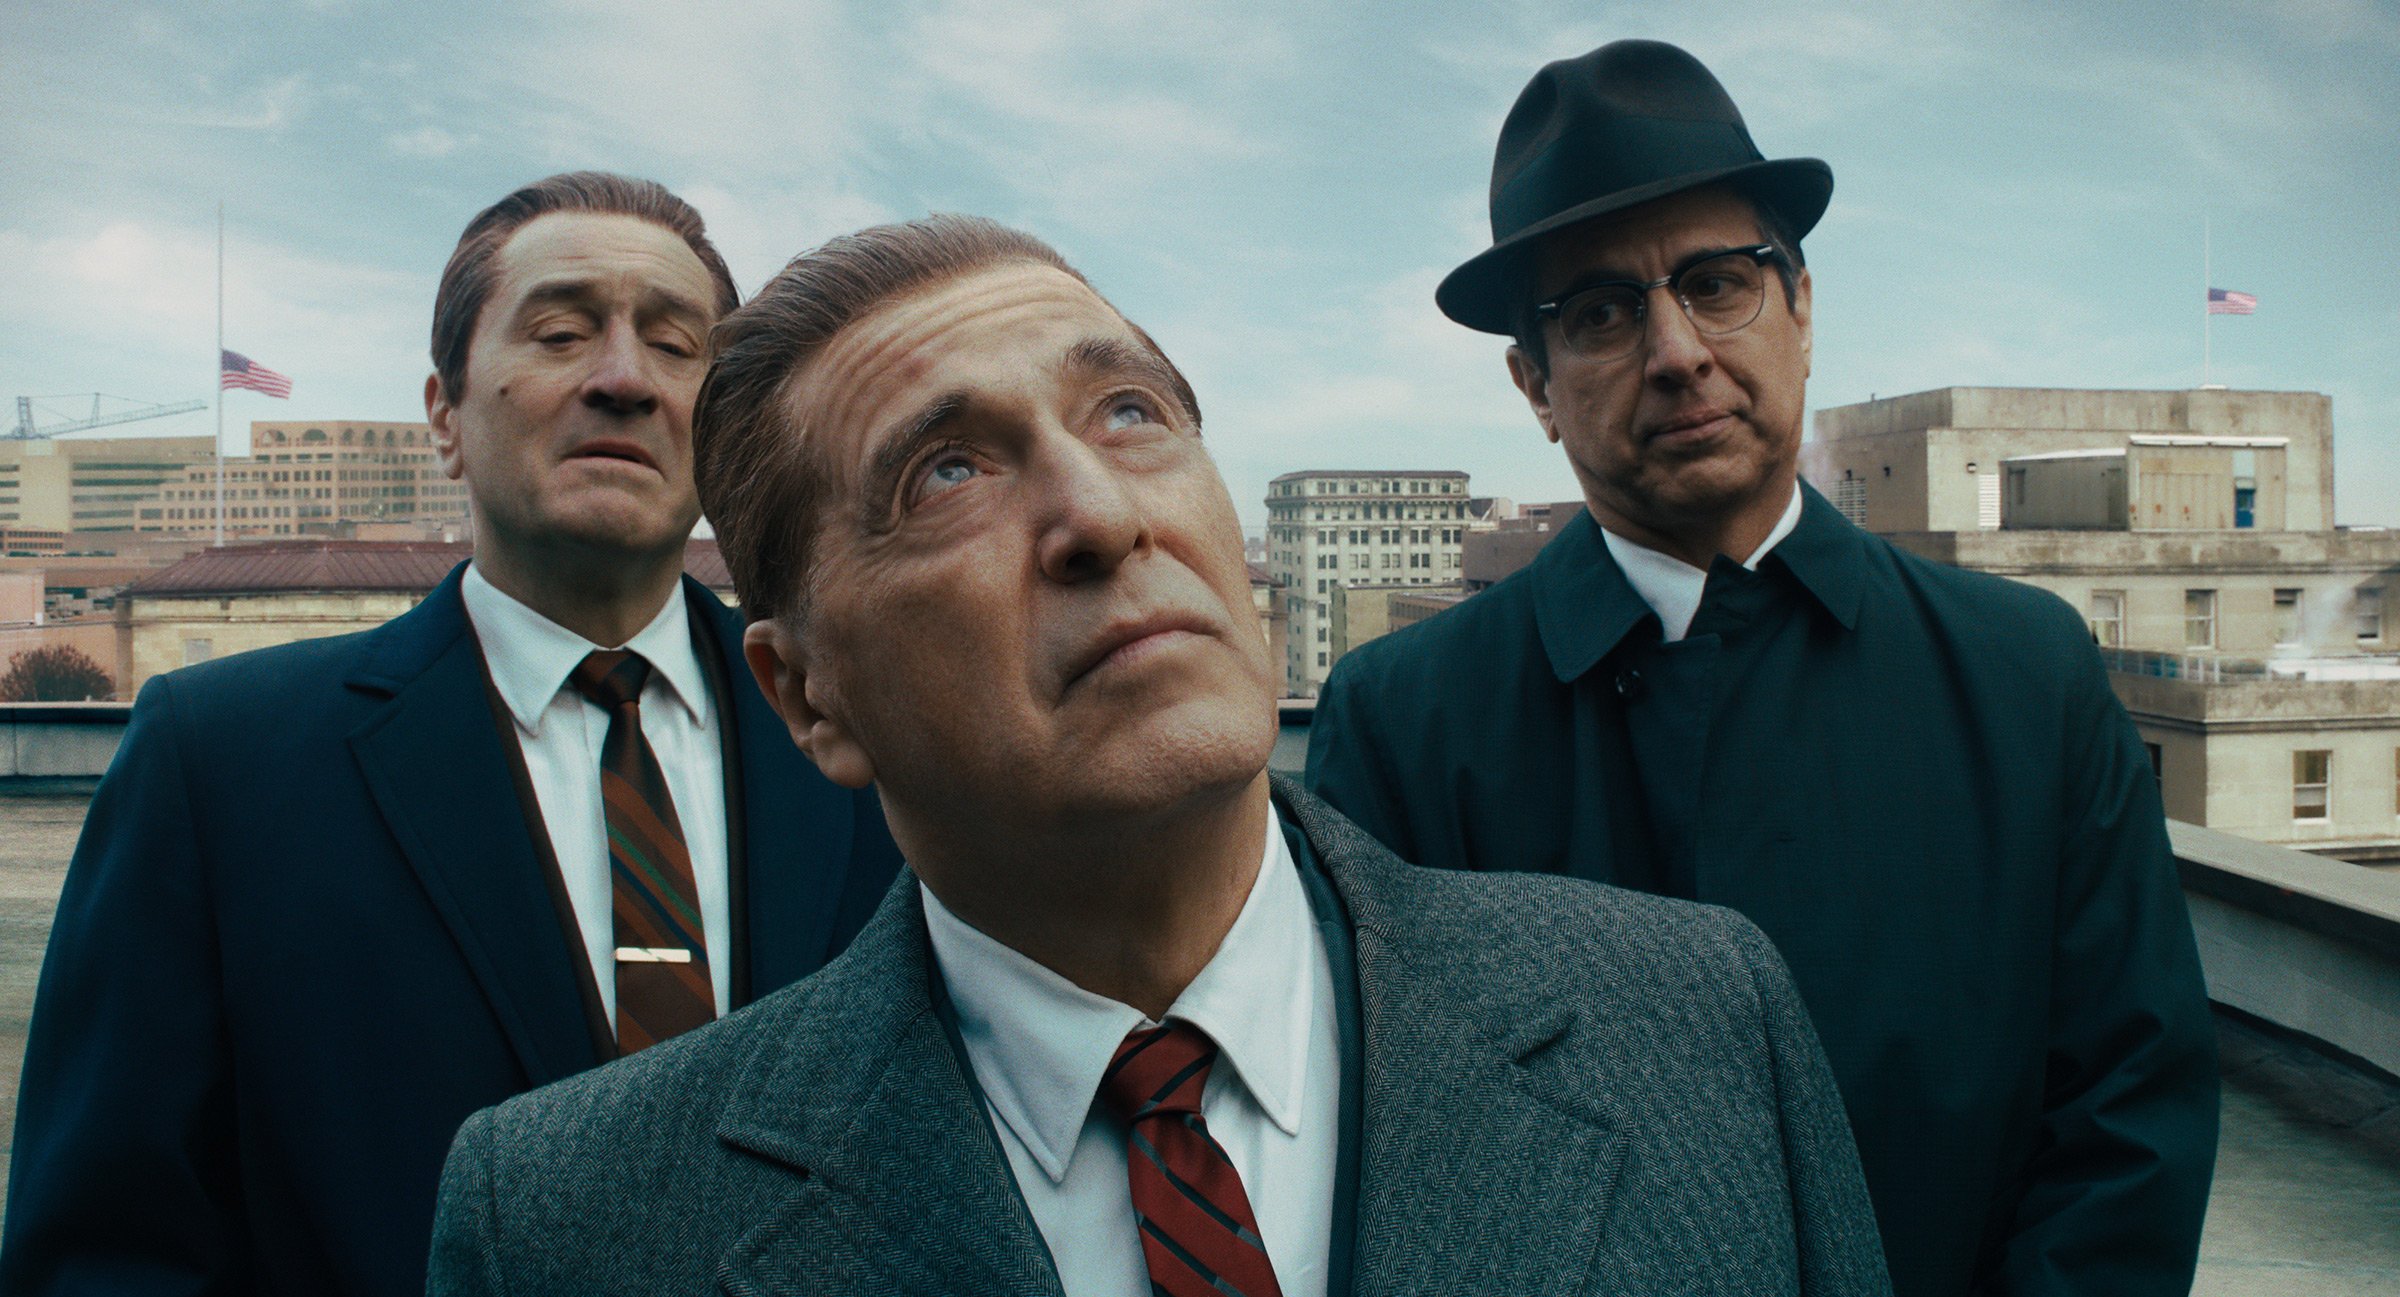 Martin Scorsese's The Irishman, his 3½-hour epic Mob movie for Netflix, received 10 nominations